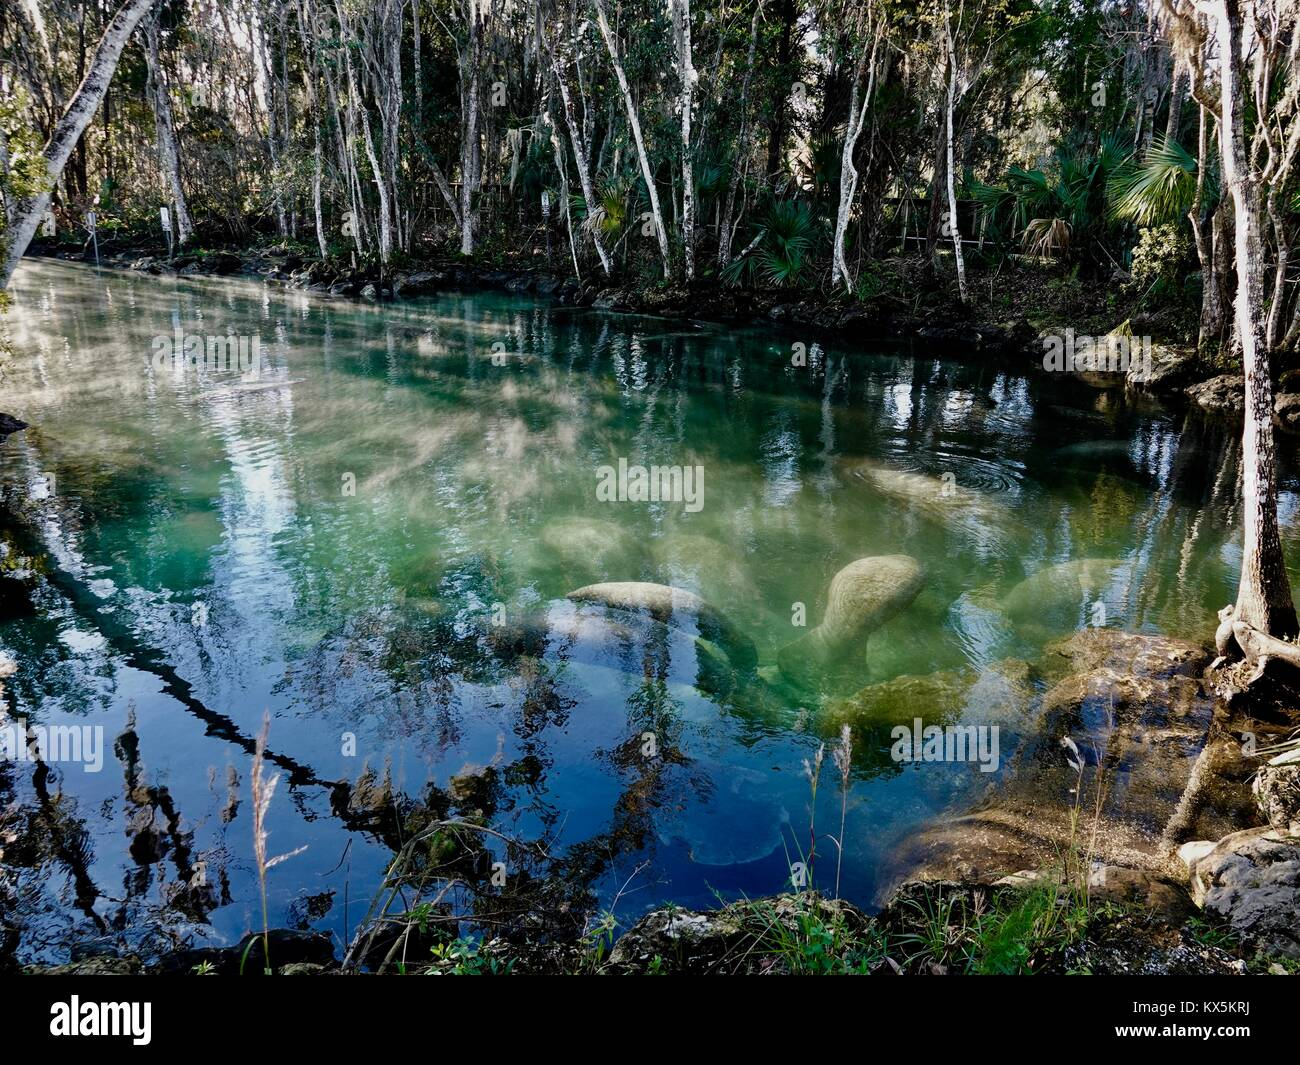 manatees-trichechus-manatus-gathered-in-three-sisters-springs-on-a-KX5KRJ.jpg